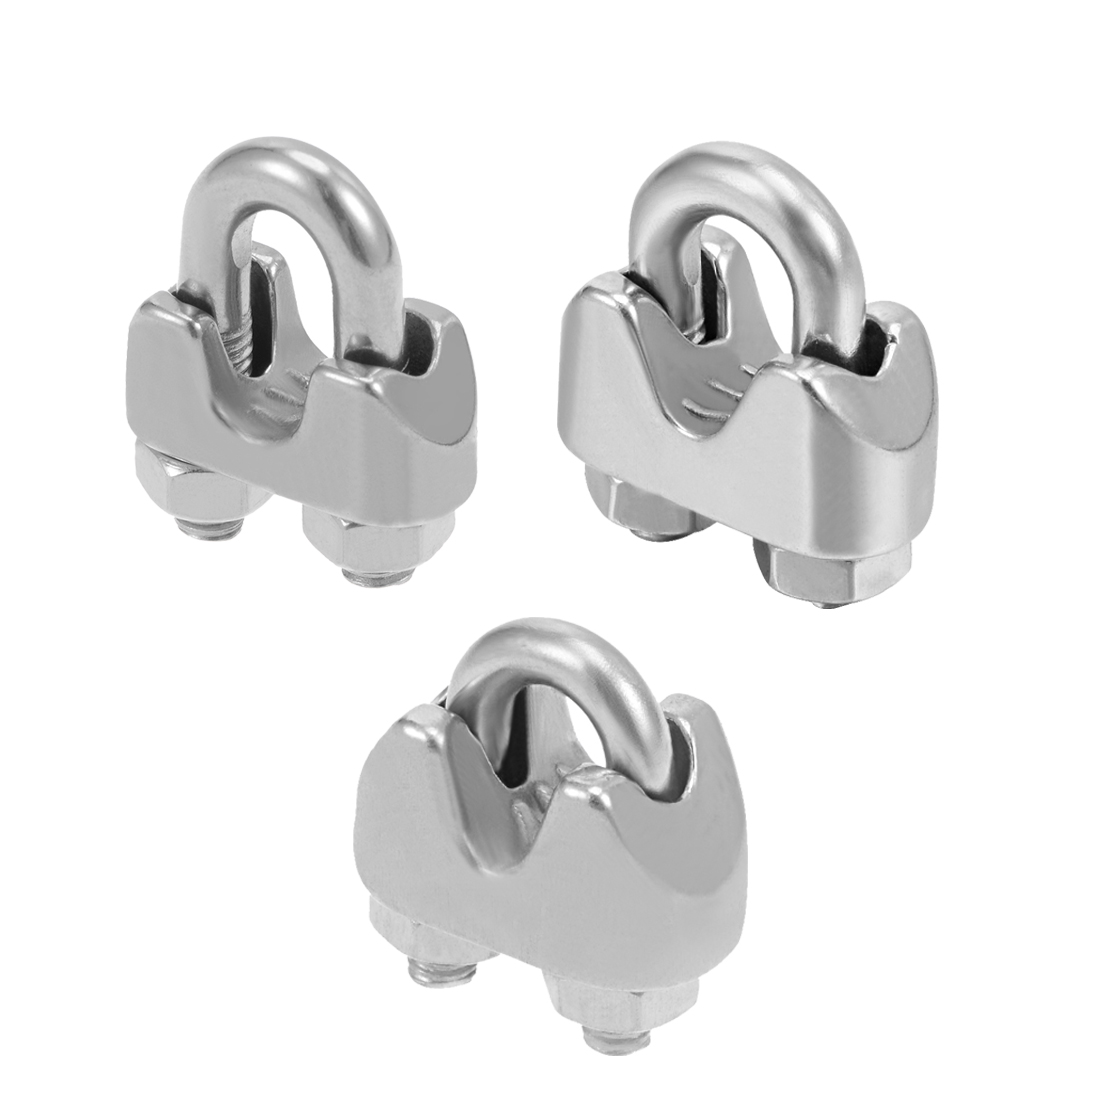 Uxcell 4-10pcs Stainless Steel 2mm 1/16 Inch 4mm 5/32 Inch 5mm 13/64 Inch Wire Rope Clip Cable Clamp Fastener Silver Tone